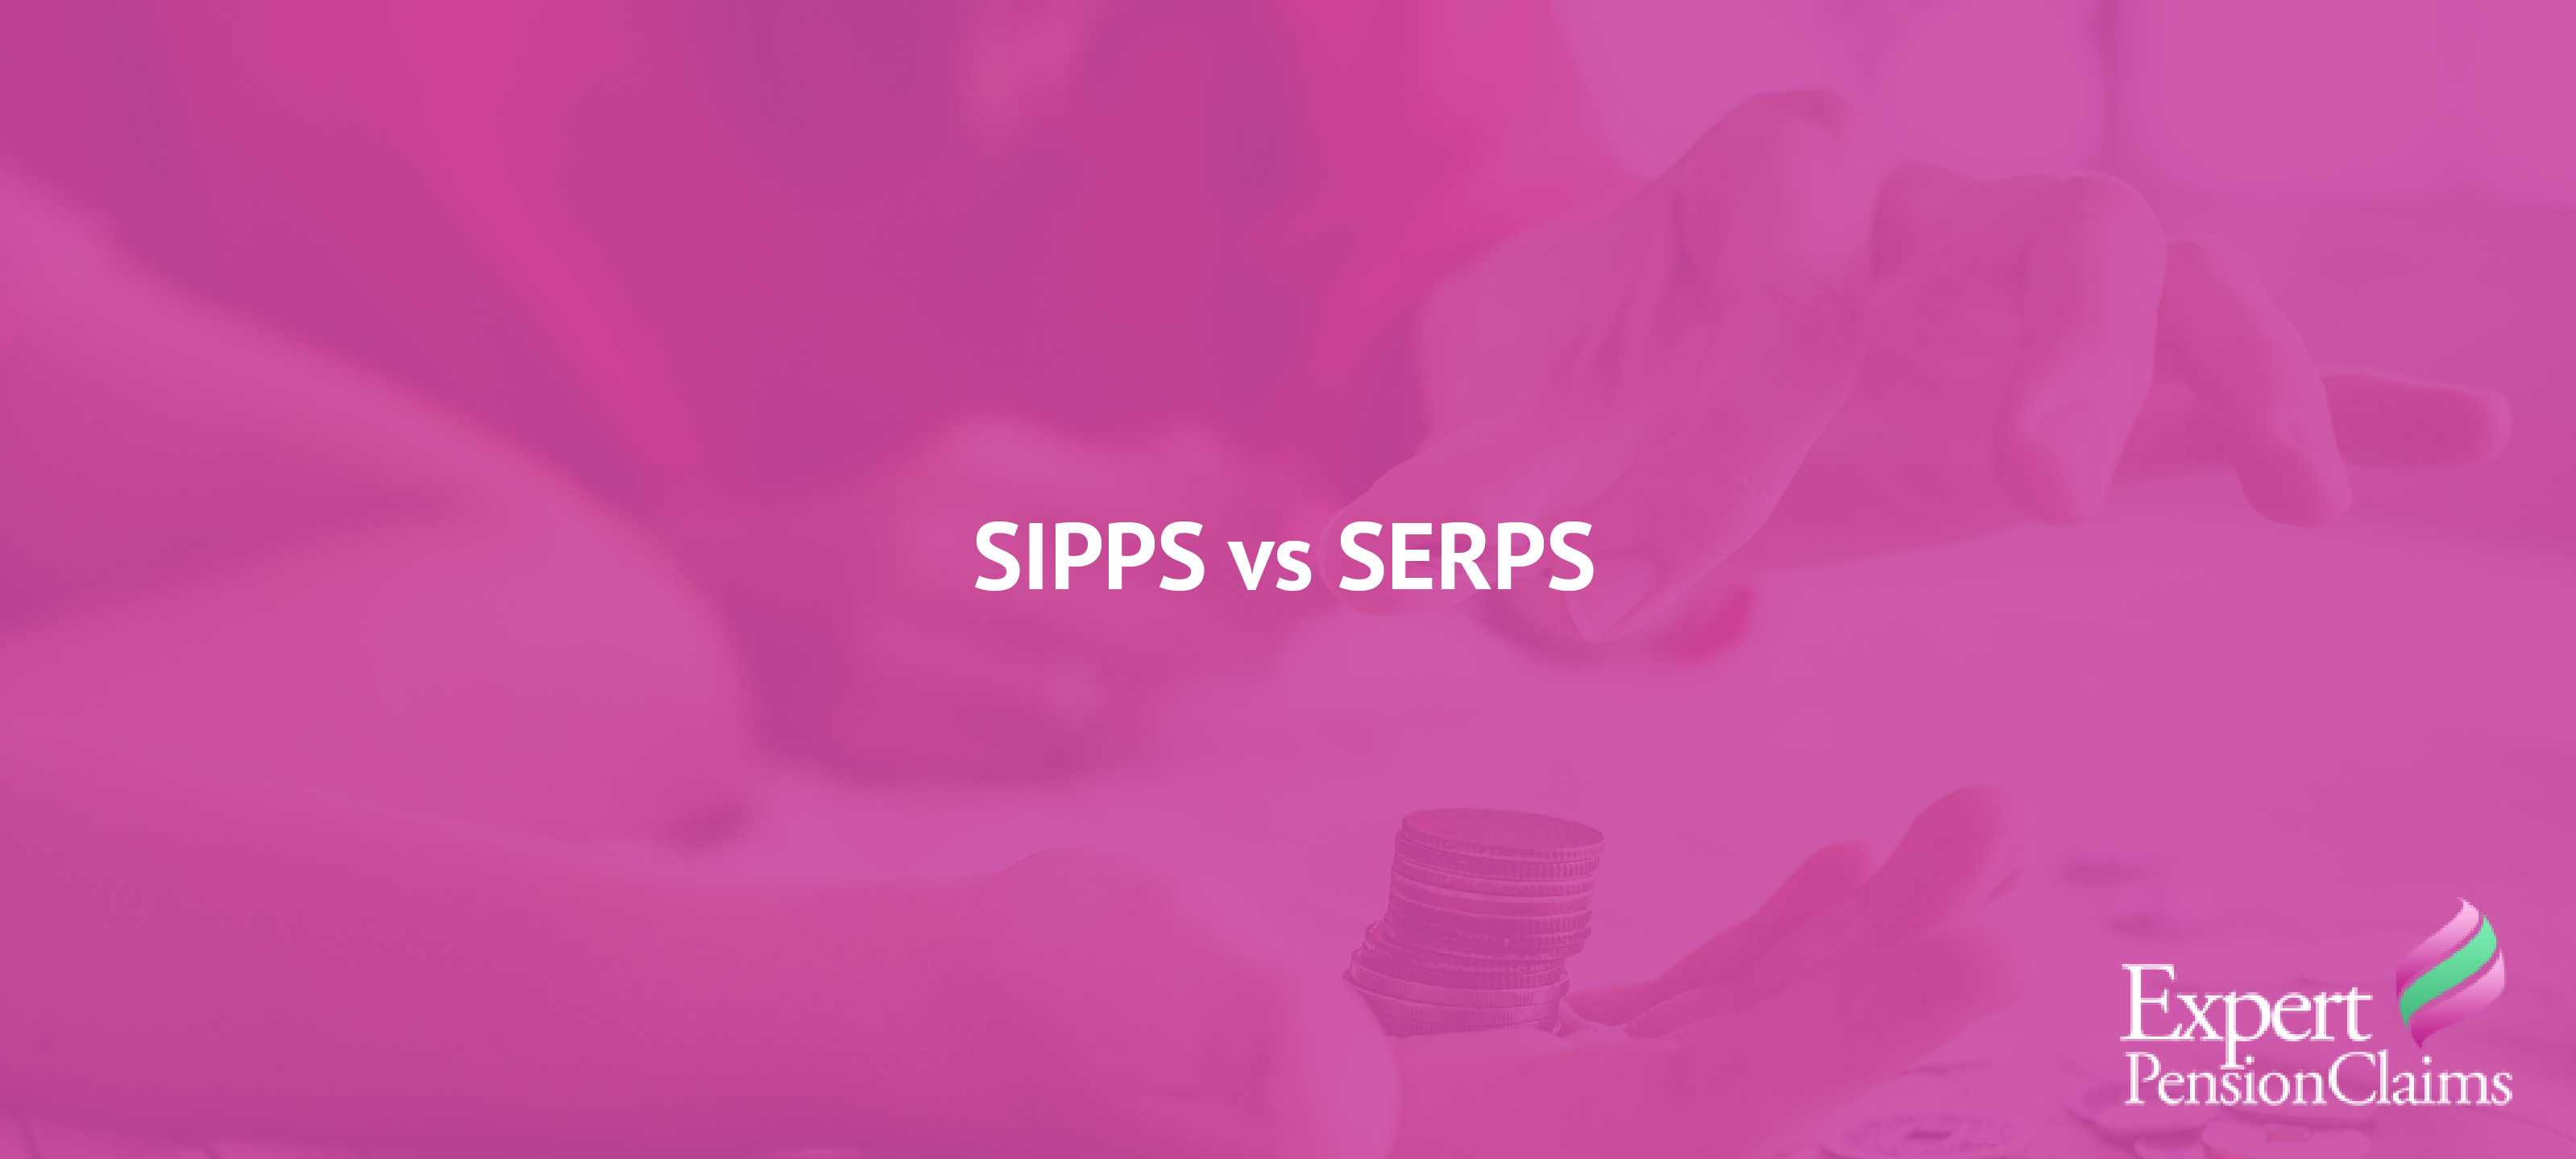 SIPPs vs SERPS: What's the difference?